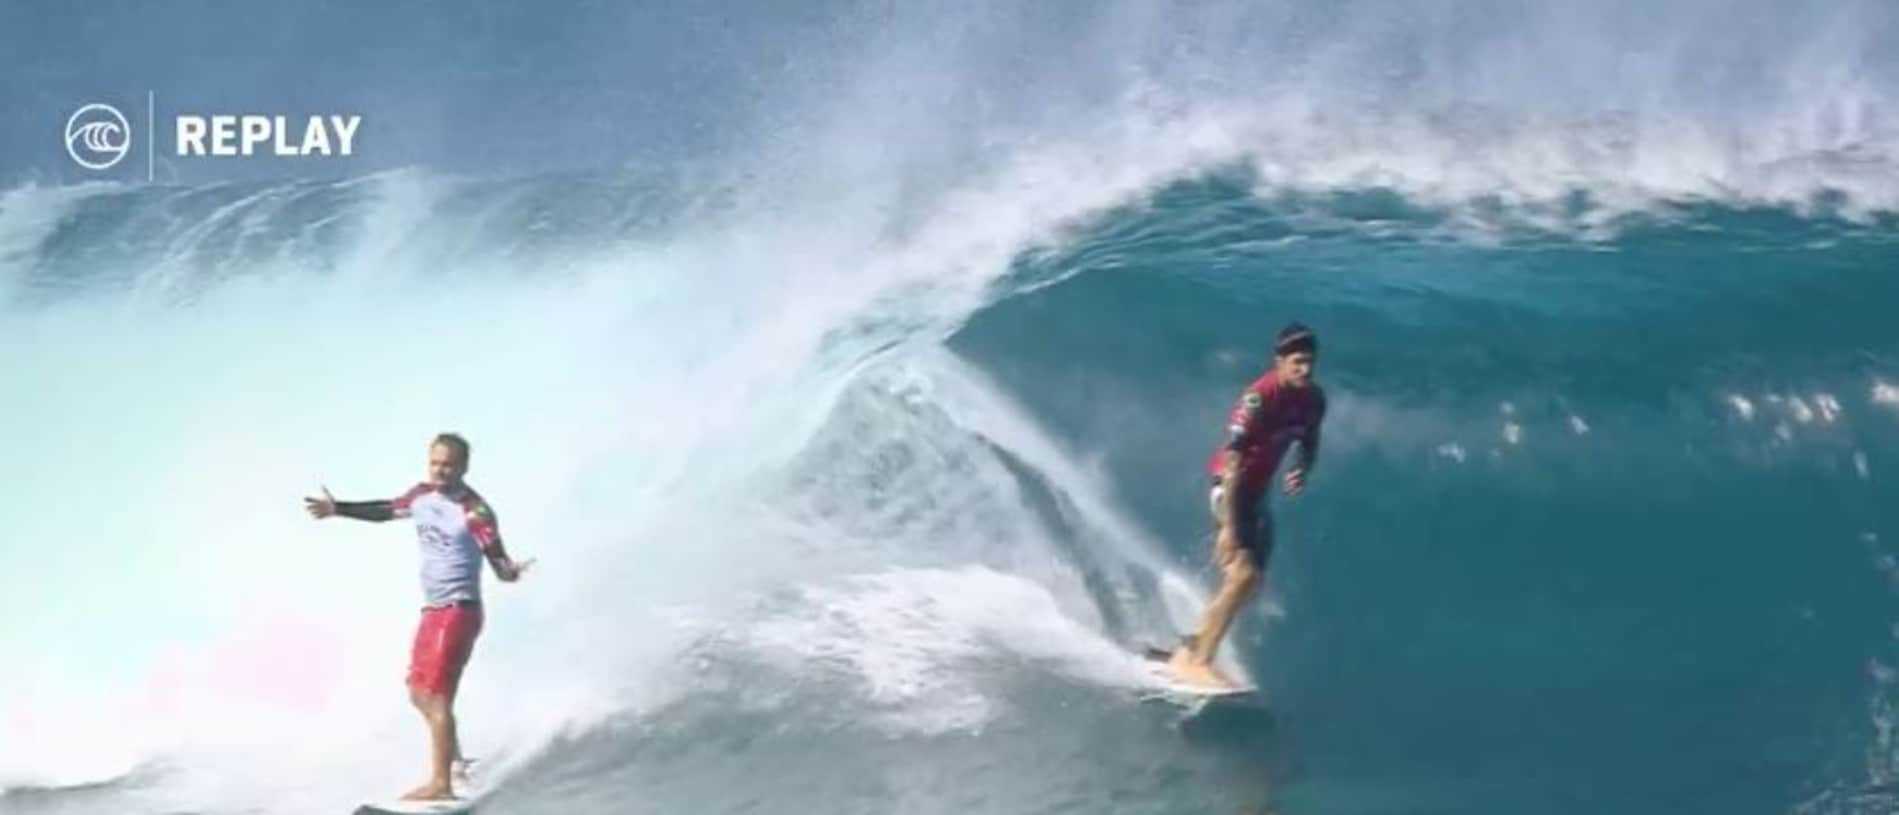 Caio Ibelli objects as Gabriel Medina drops in.